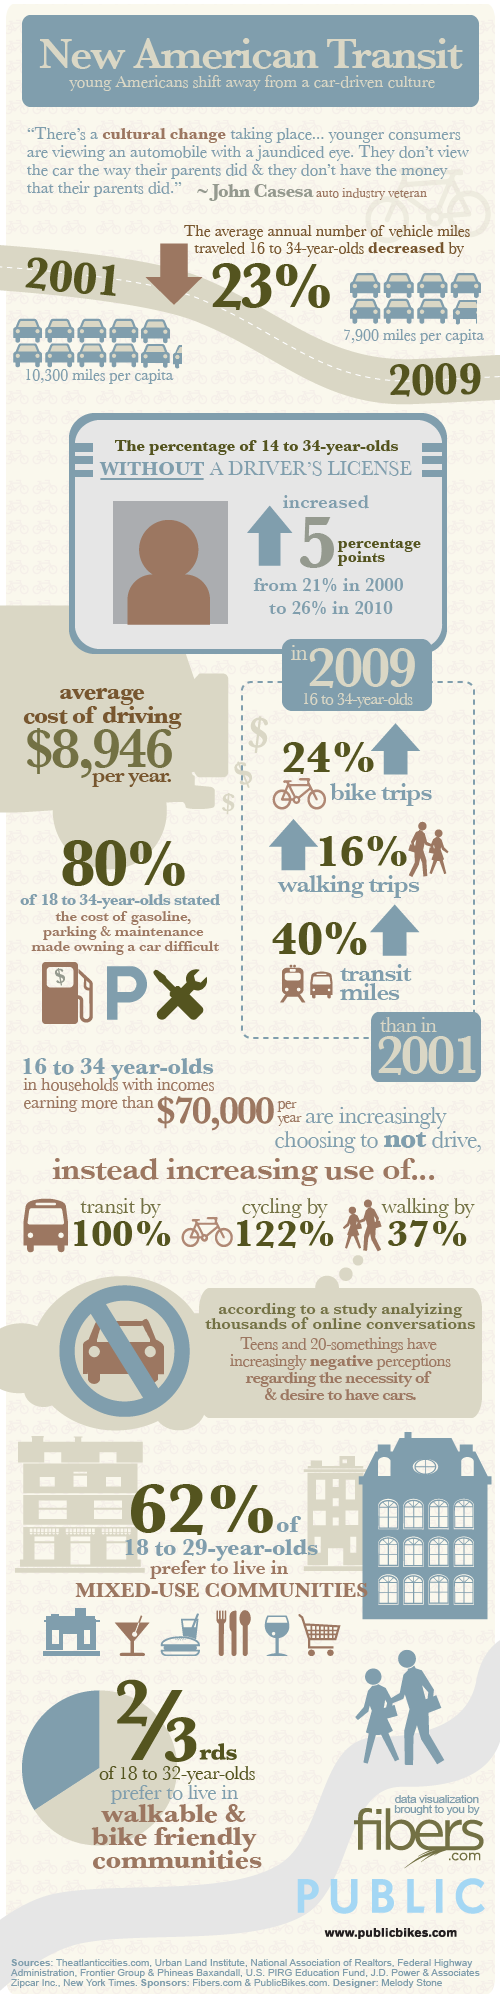 New American Transit Infographic